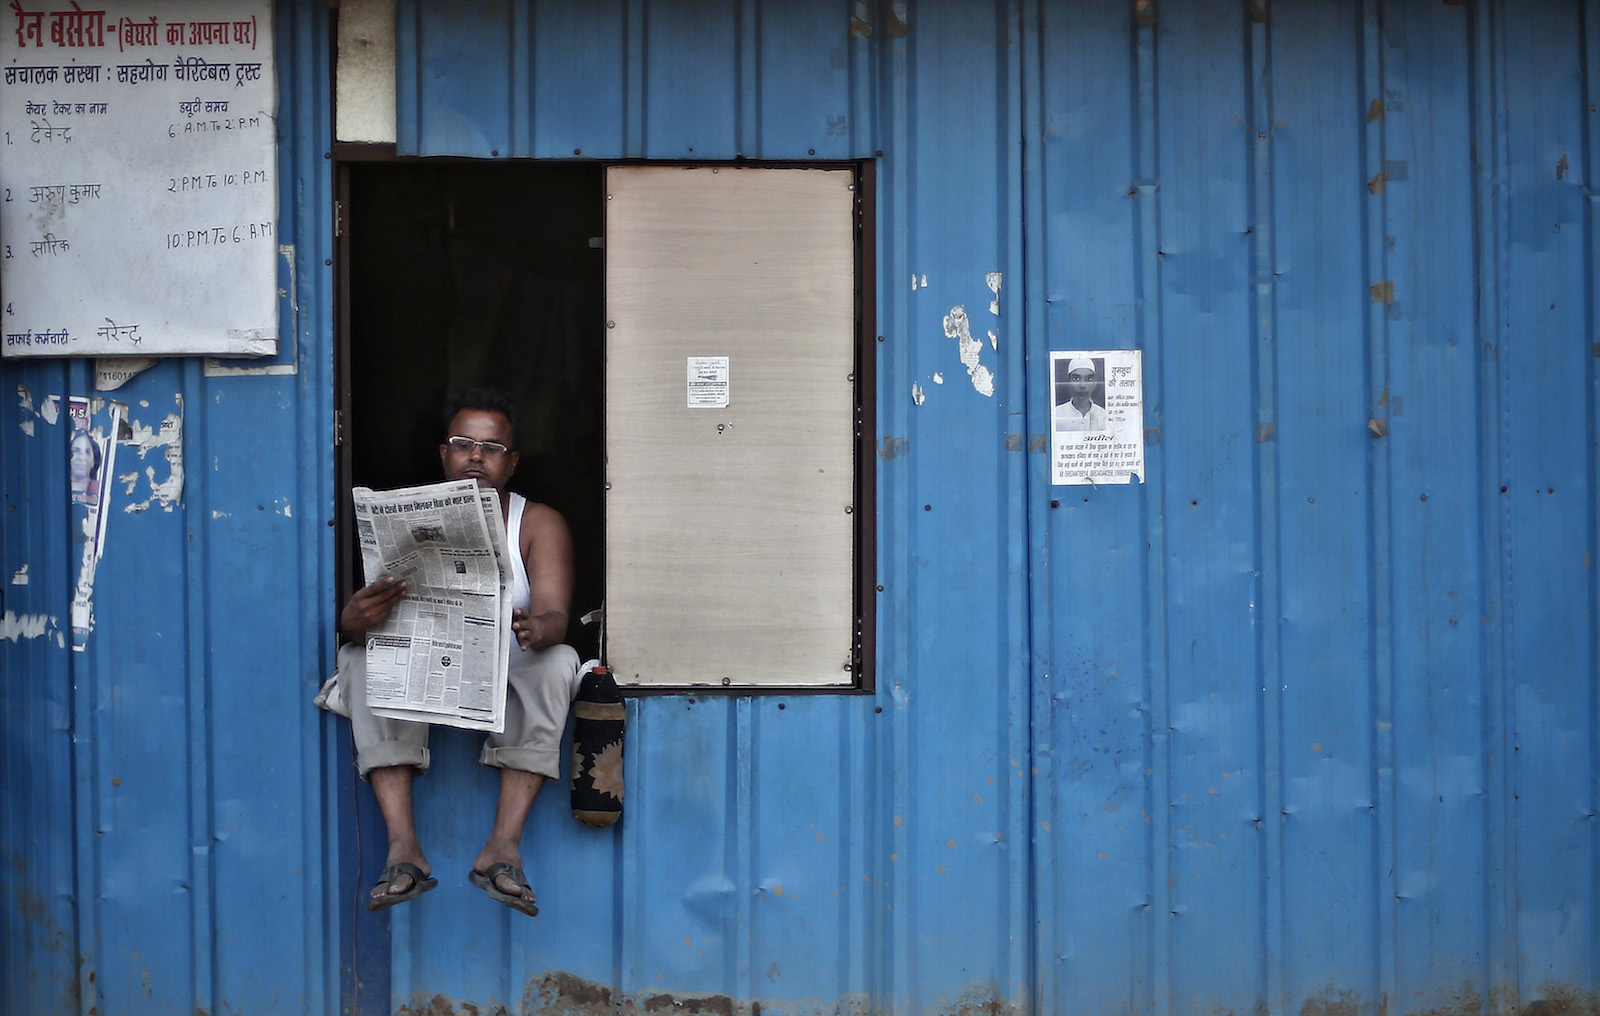 A man reads a newspaper as he sits on the window of a temporary shelter for homeless people in New Delhi.